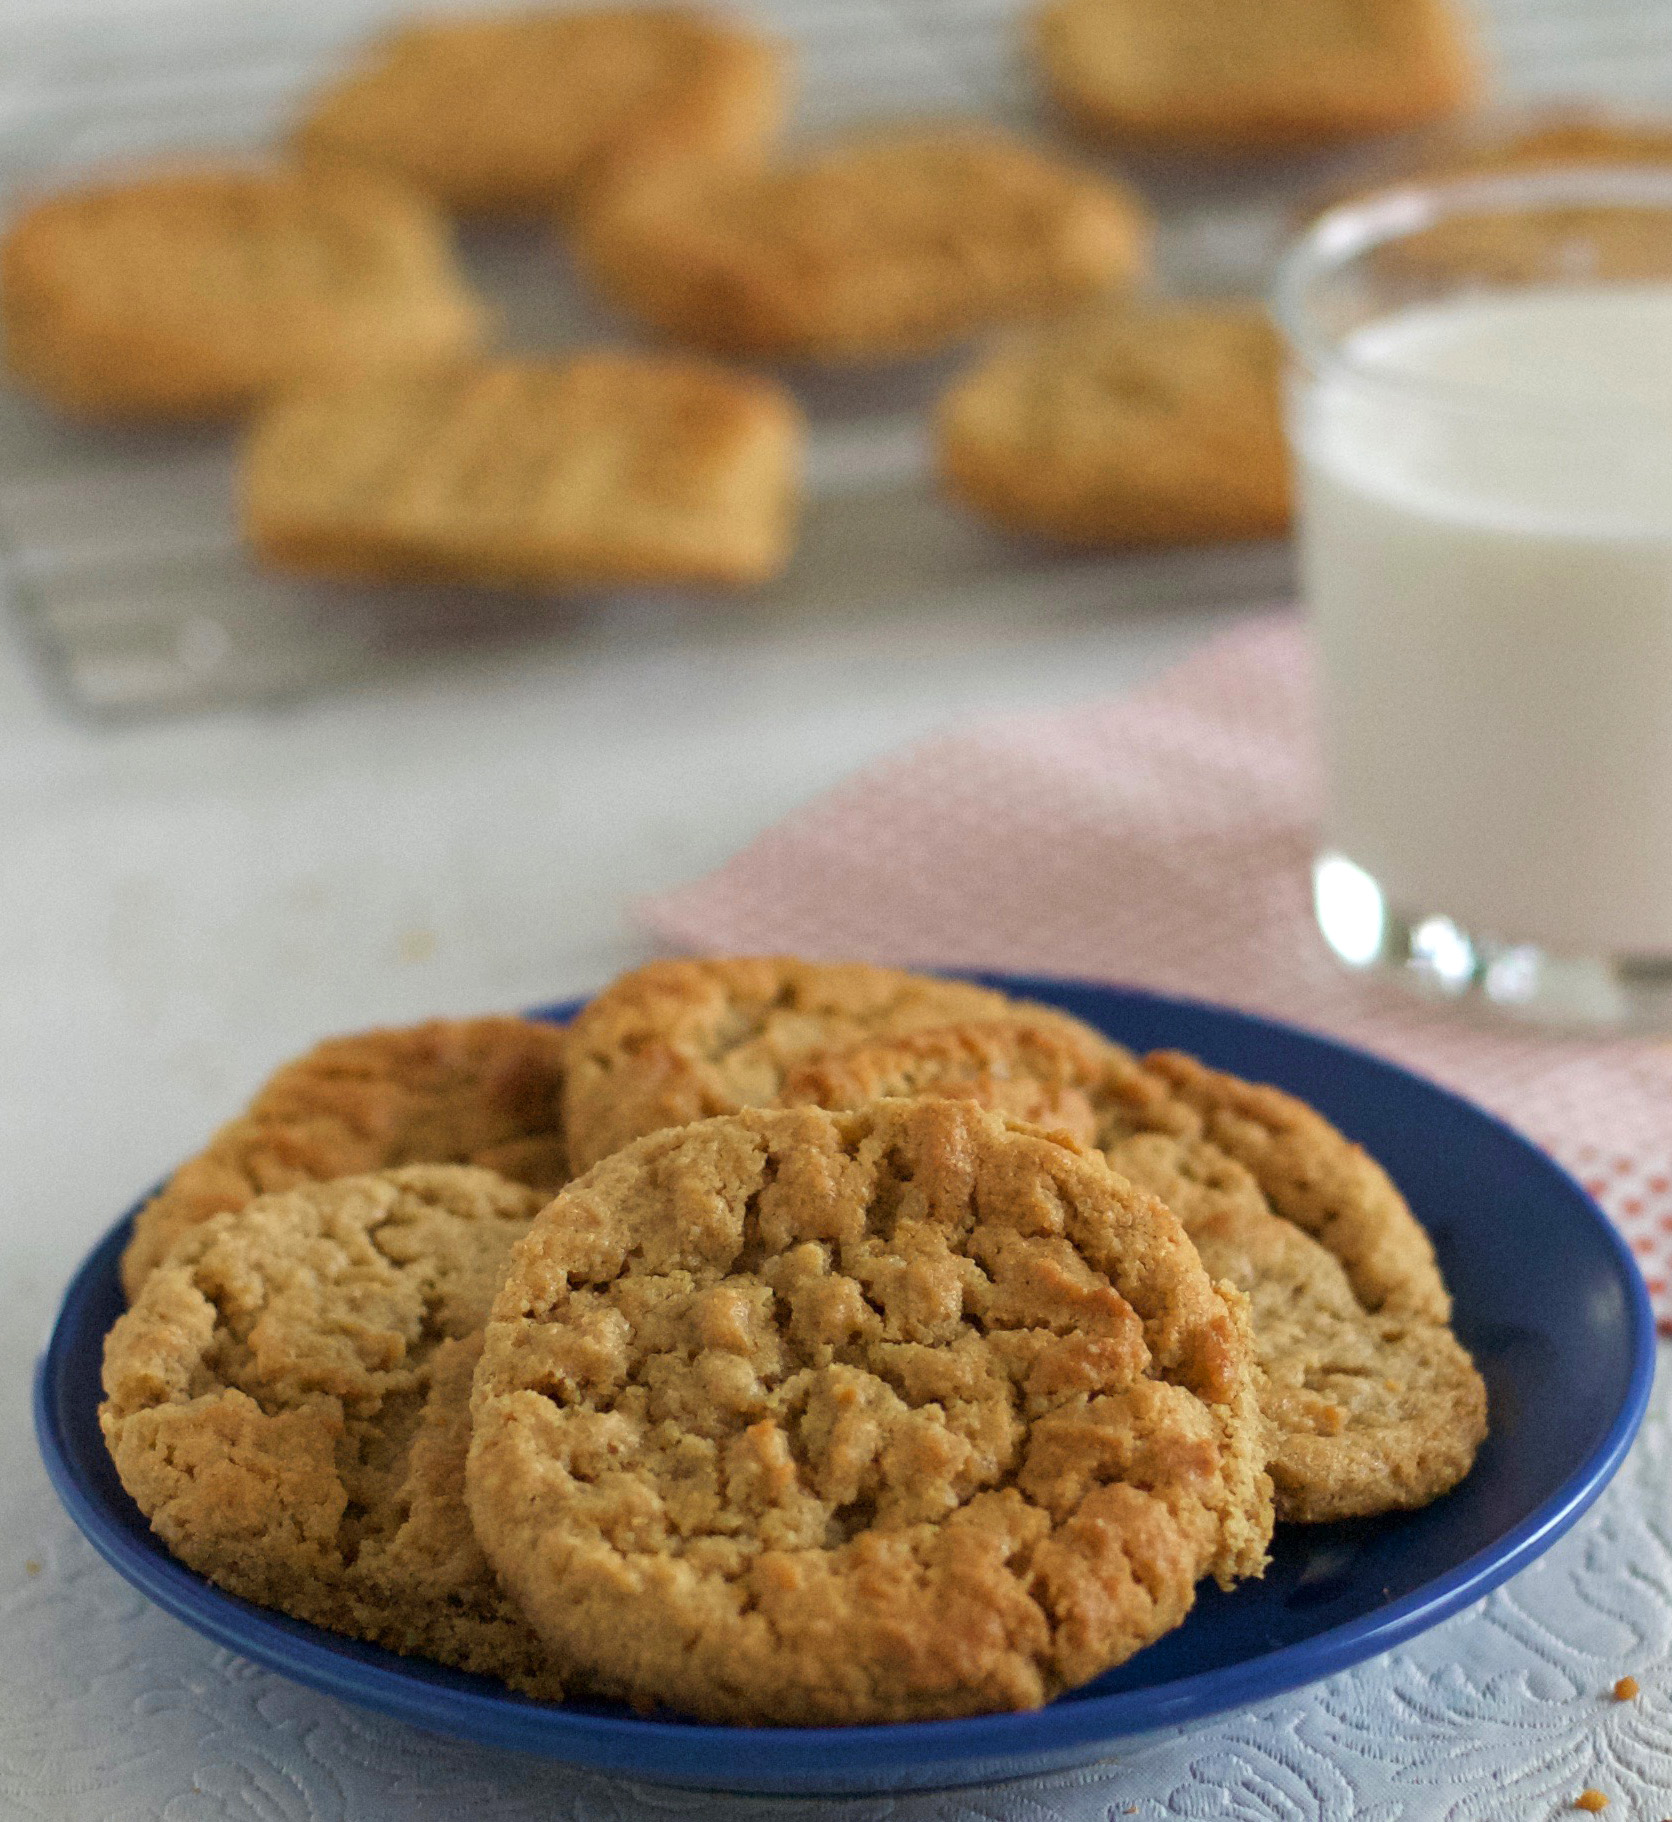 Gluten Free Peanut Butter Cookies Recipe